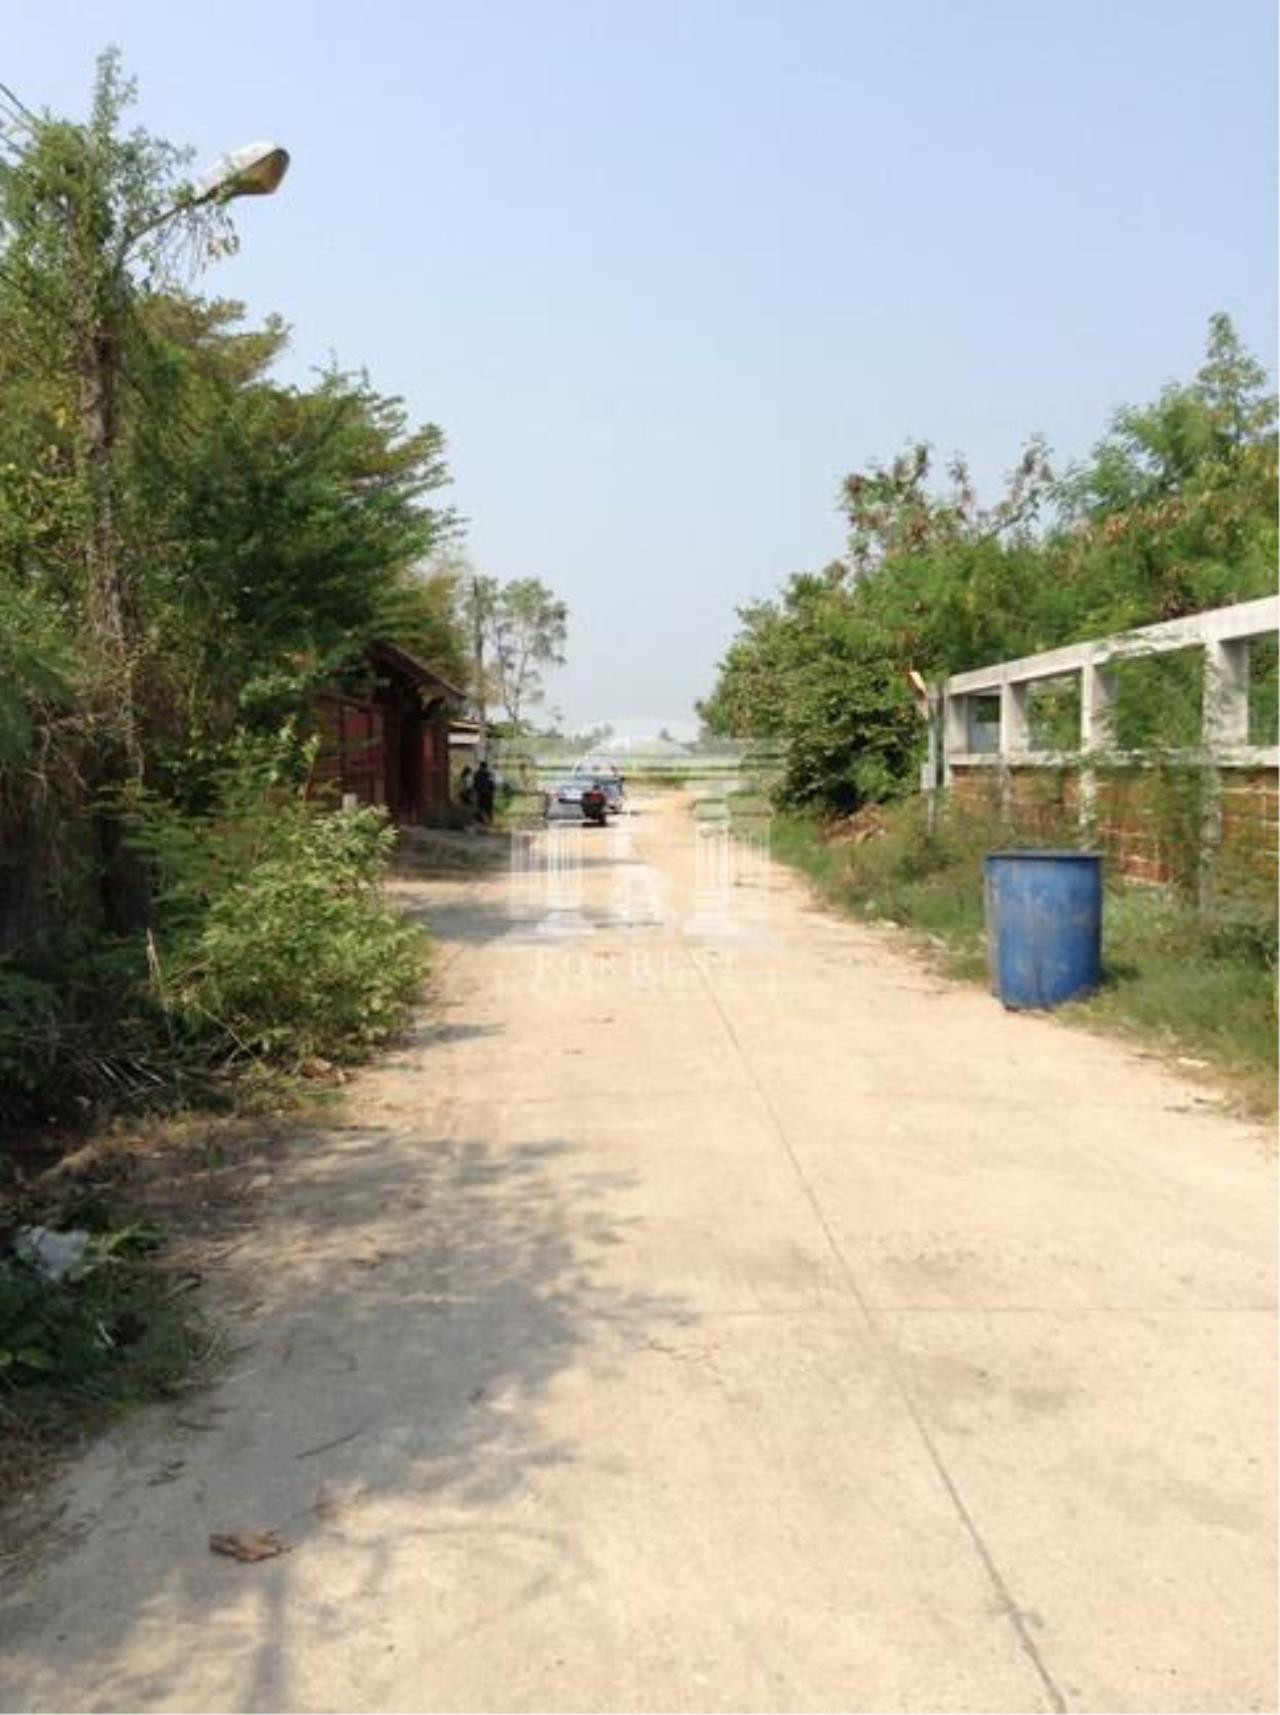 Forbest Properties Agency's 37164-Land For Sale, in Ban Pho district, Chachoengsao province, 4 rai 340 sq.wa. 3